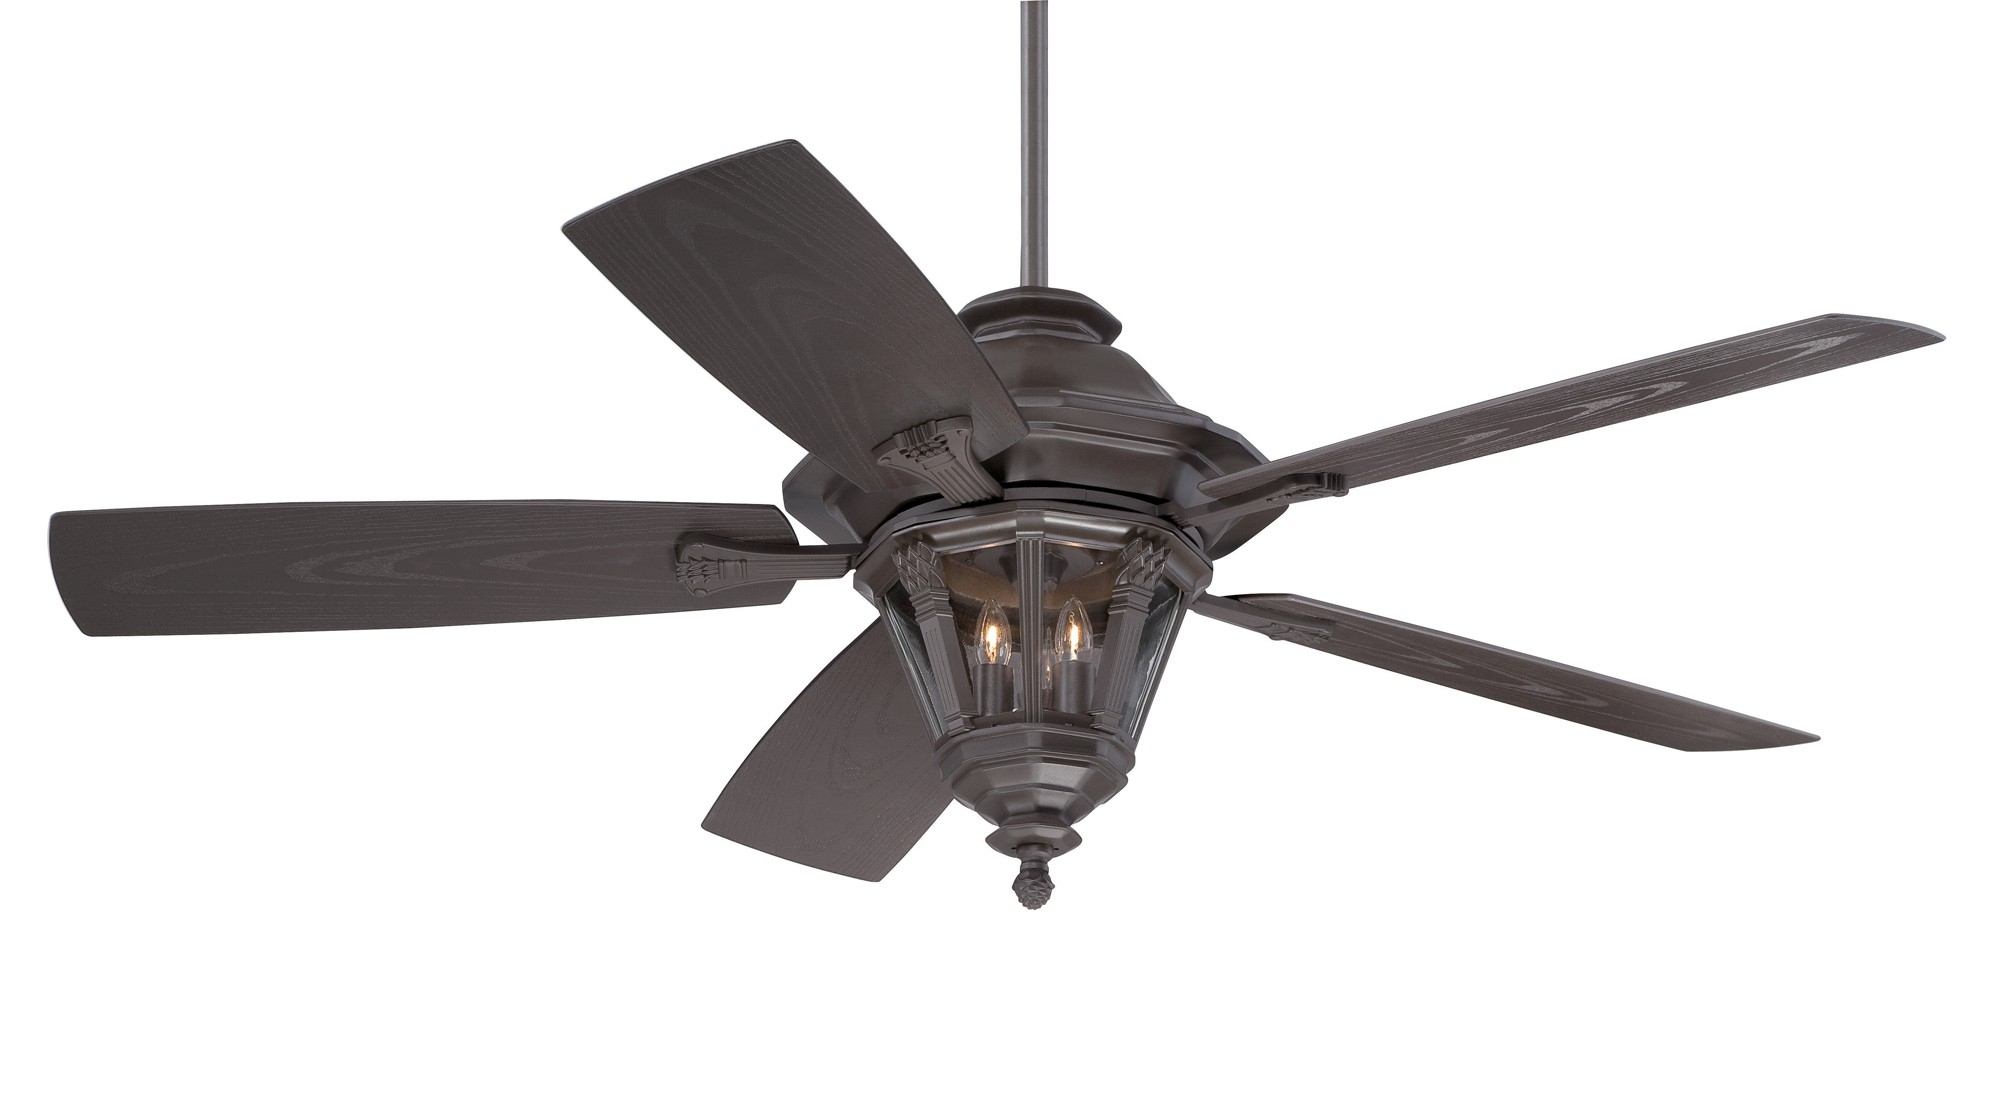 Ceiling: Stunning Outdoor Plug In Ceiling Fan Swag Ceiling Fan With Widely Used Low Profile Outdoor Ceiling Fans With Lights (View 4 of 20)